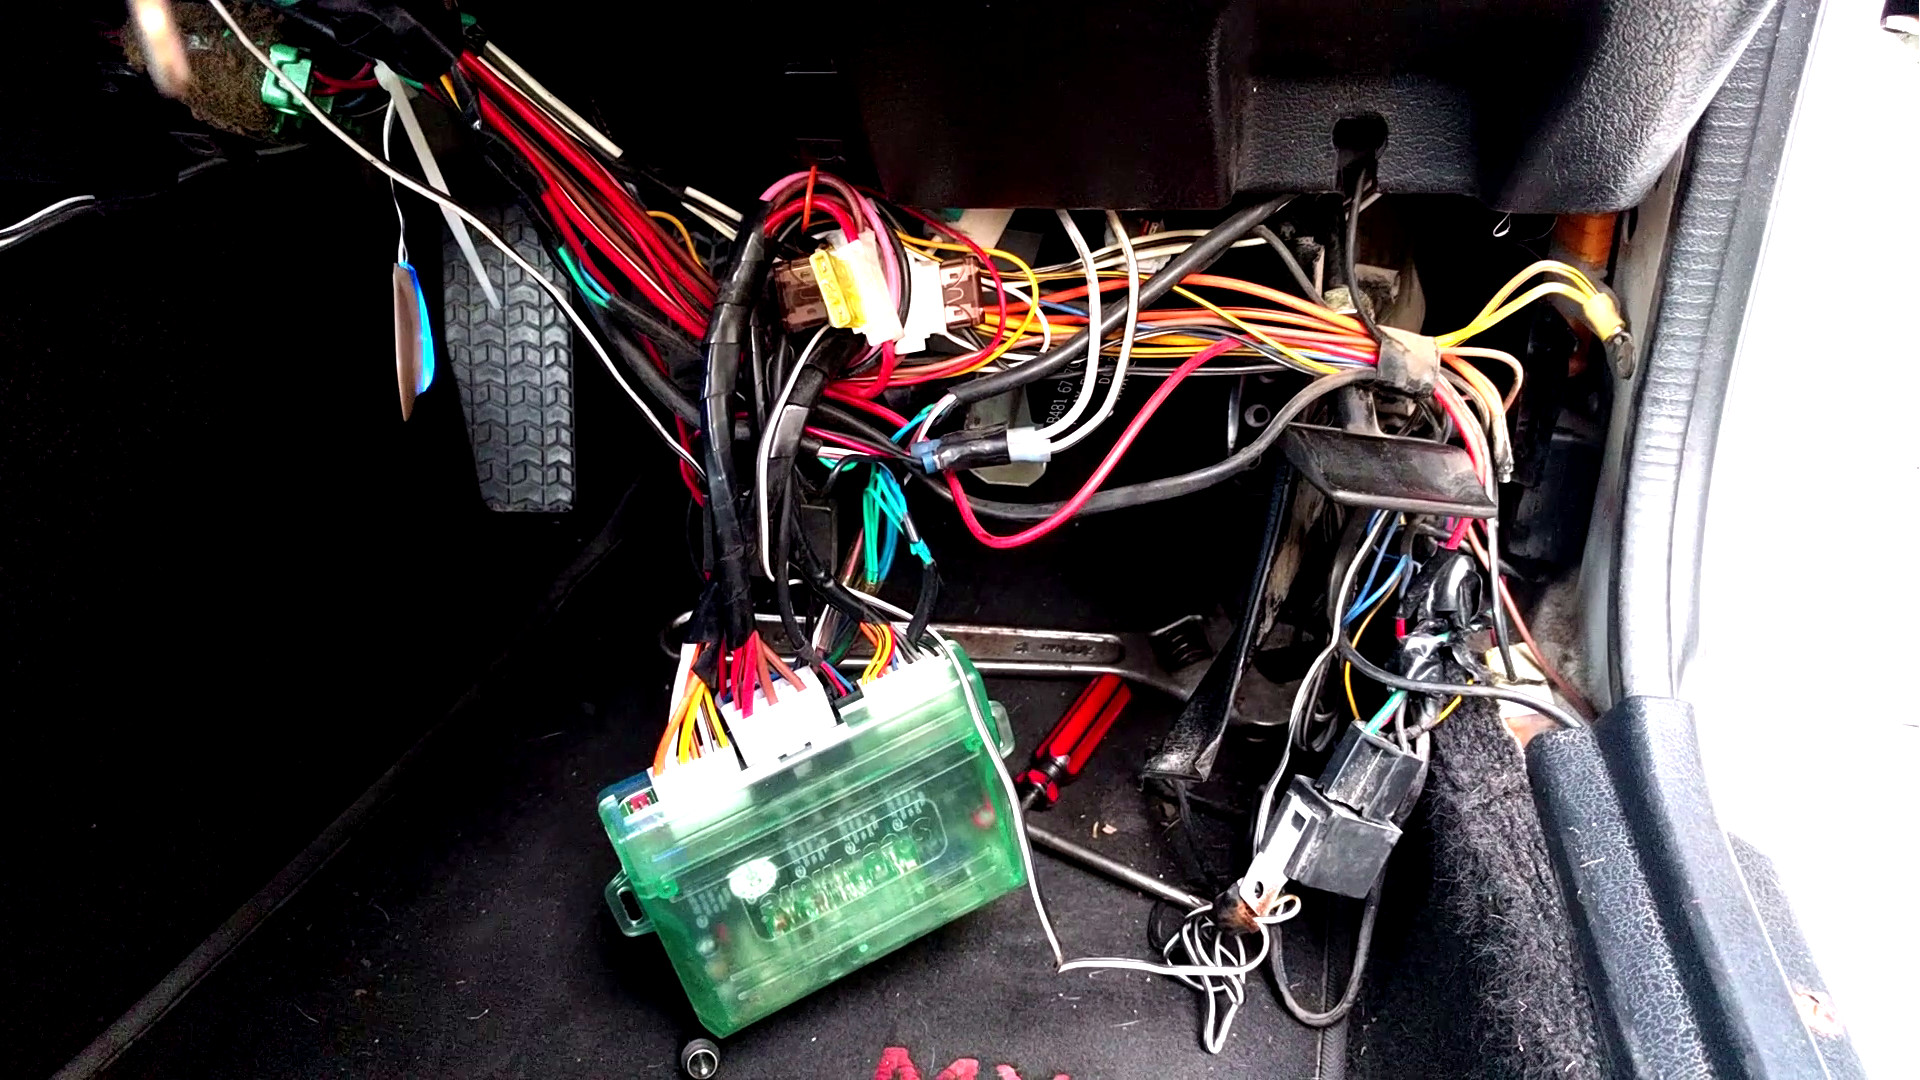 1993 Toyota Truck Fuse Box The Bane Of Aftermarket Car Alarms Hackaday